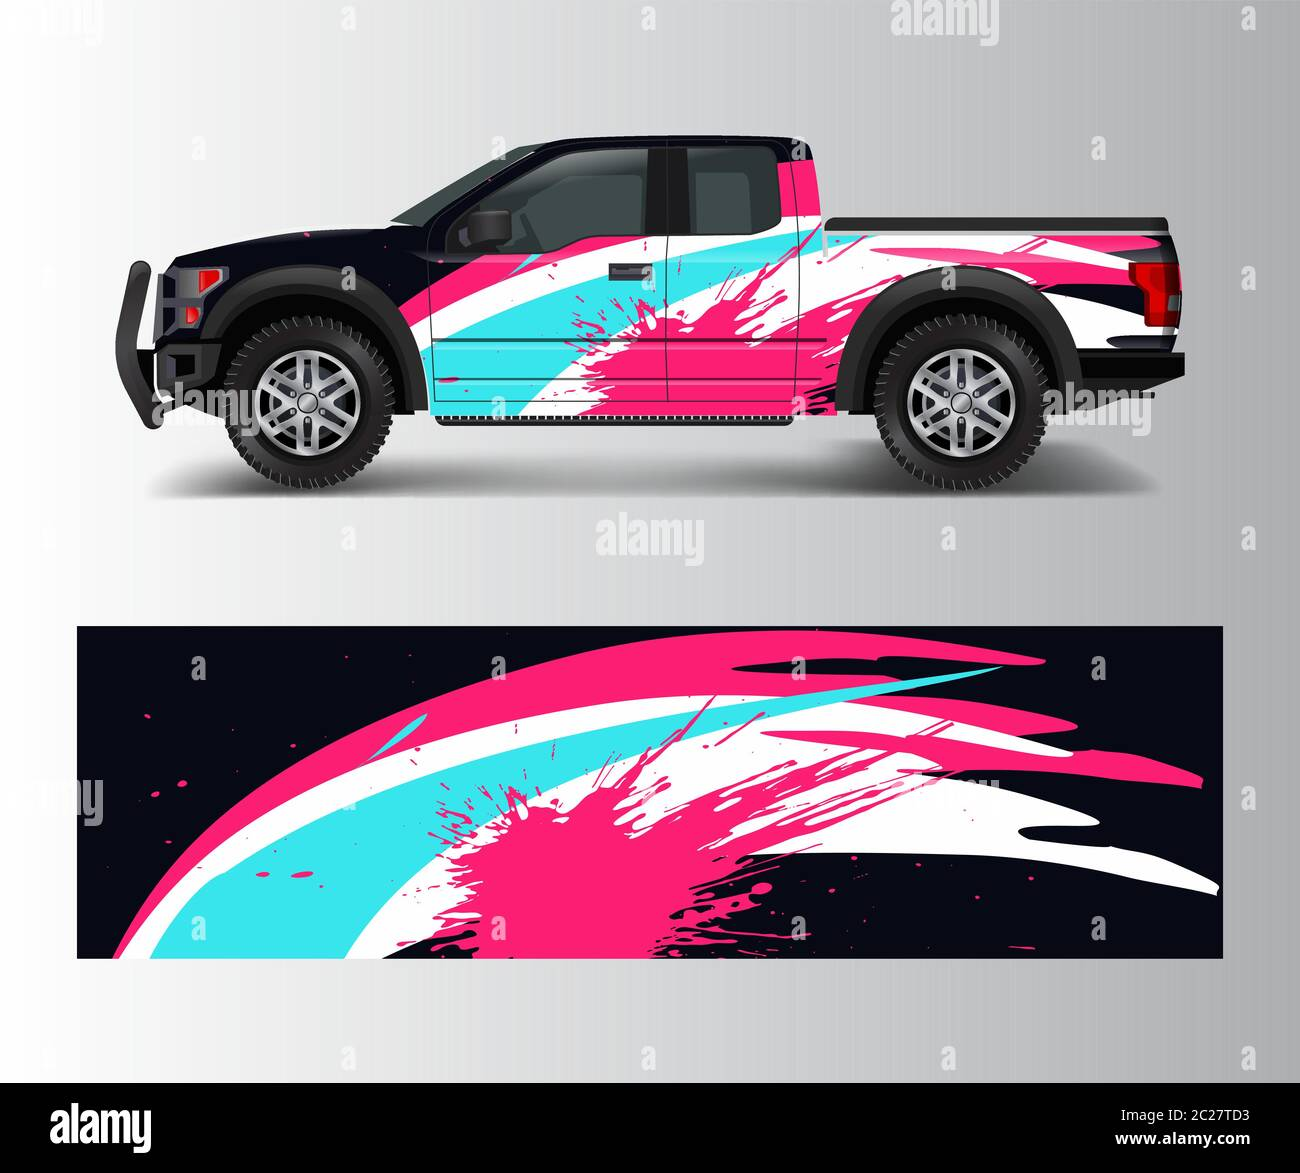 Racing Graphic Background Vector For Truck Pickup And Vehicle Branding Vinyl And Wrap Design Vector Stock Vector Image Art Alamy